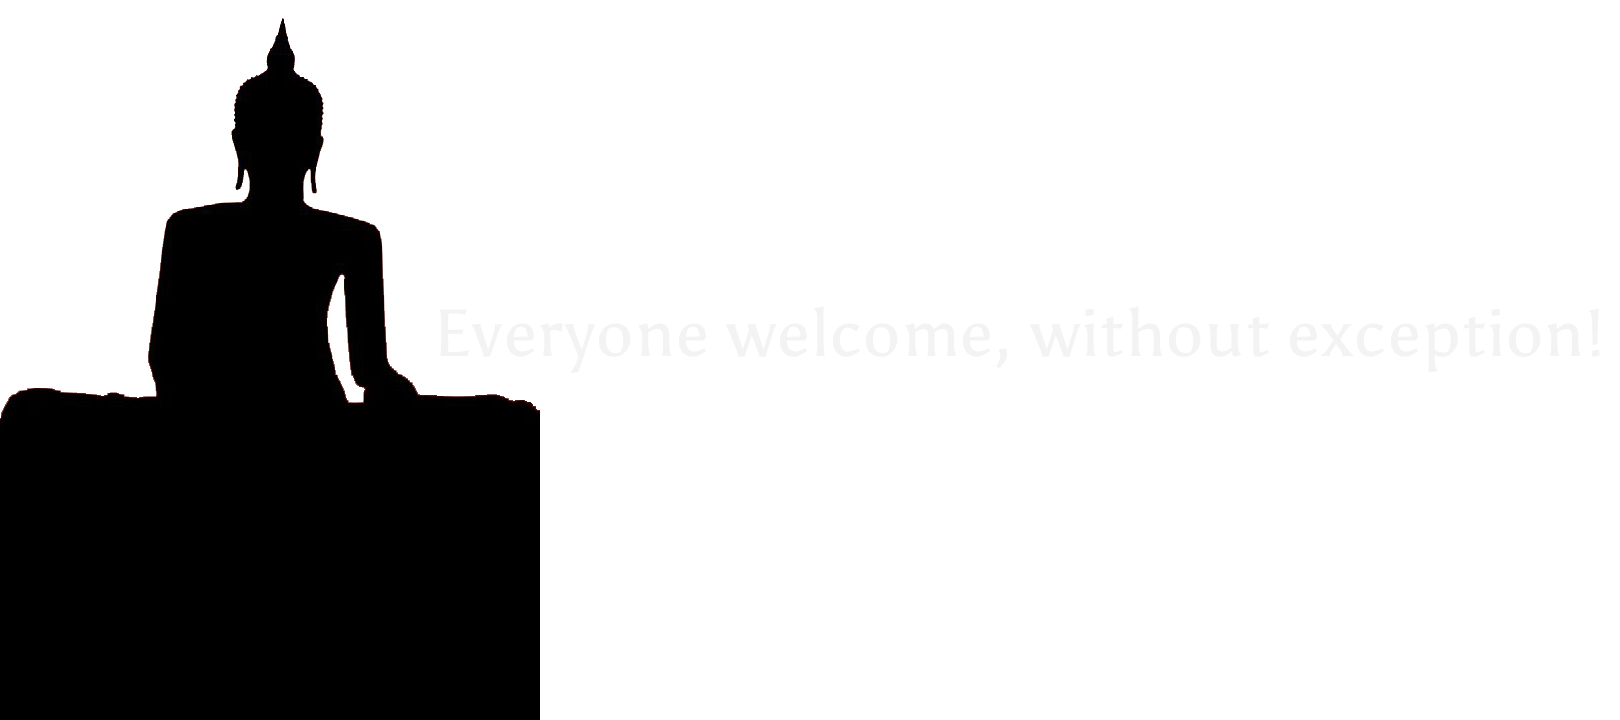 Insight Upper Market